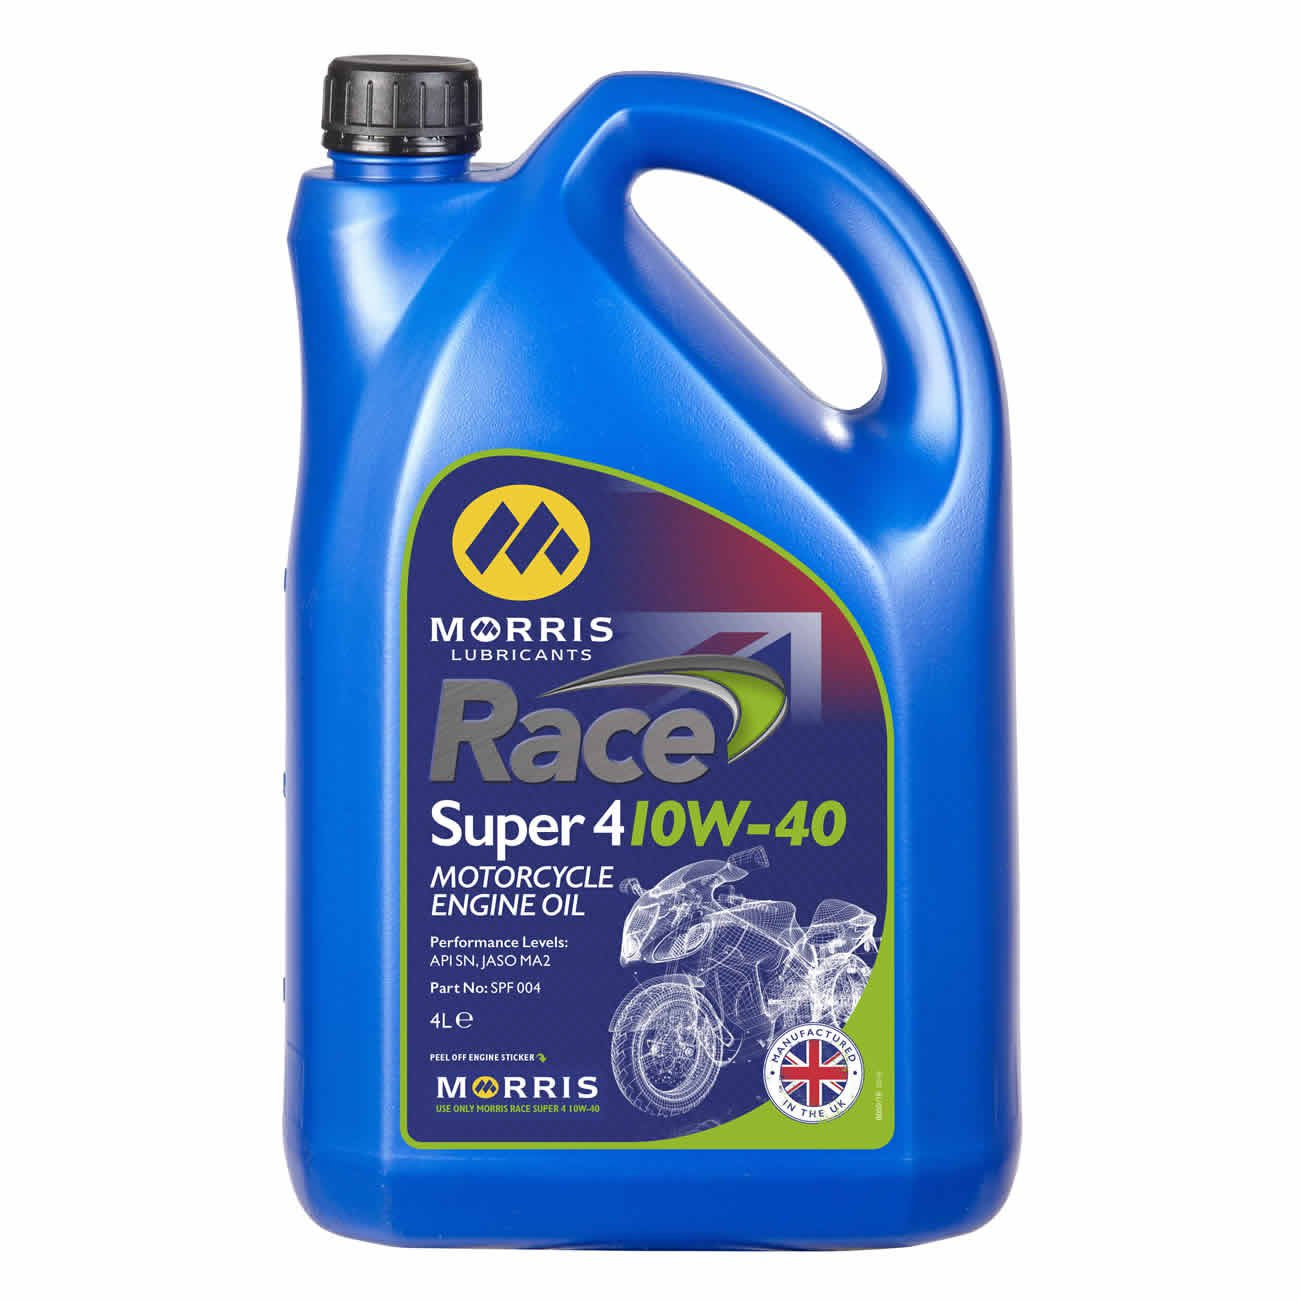 Race Super 4 10W-40, Engine Oil, Morris Lubricants - Averys Motorcycles